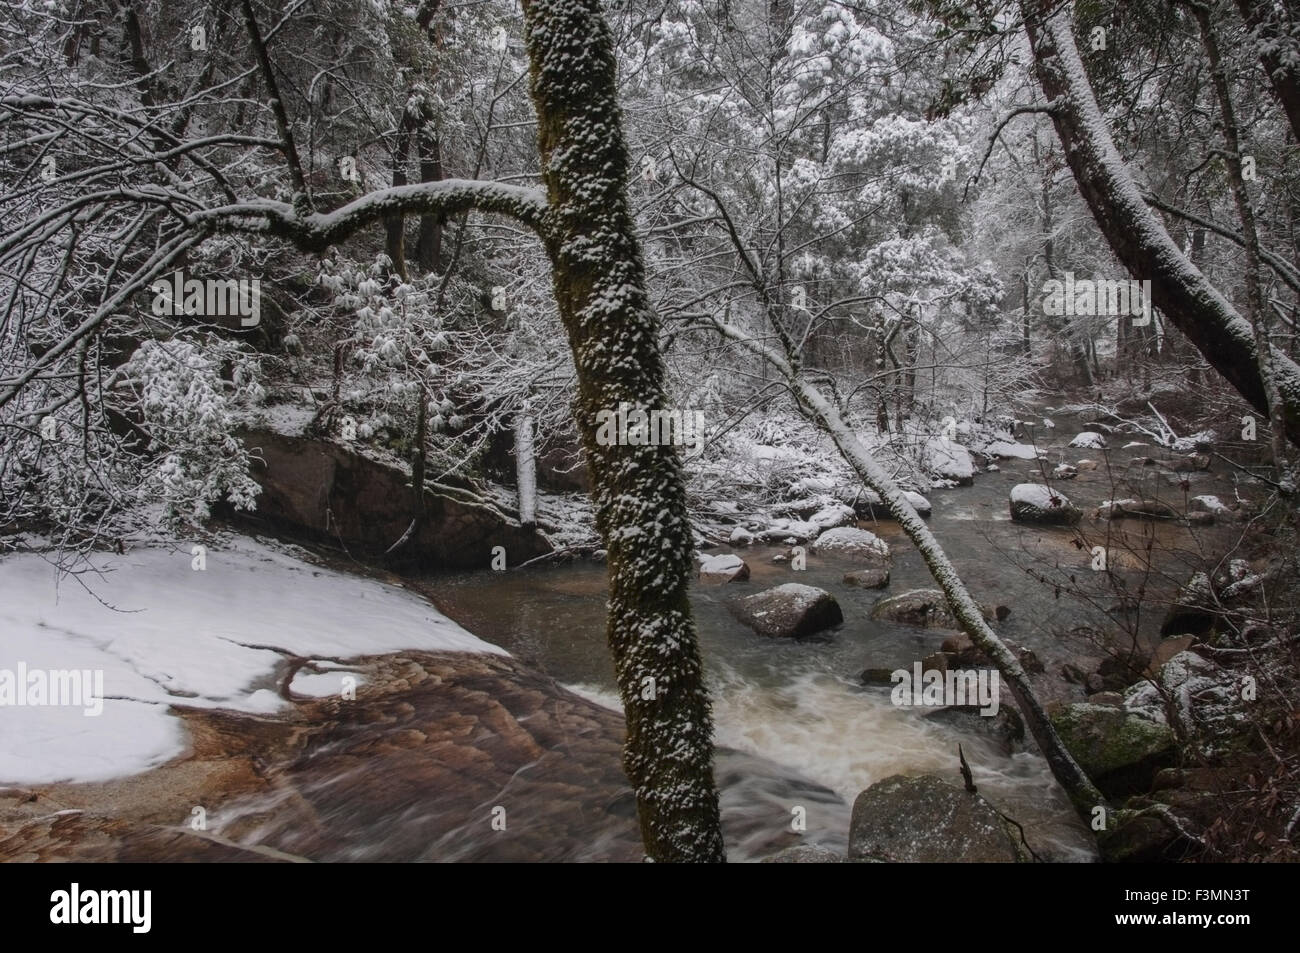 A winter snow storm adds to the beauty of Berry Creek as it flows into Lake Madrone in the Sierra foothills of Northern - Stock Image